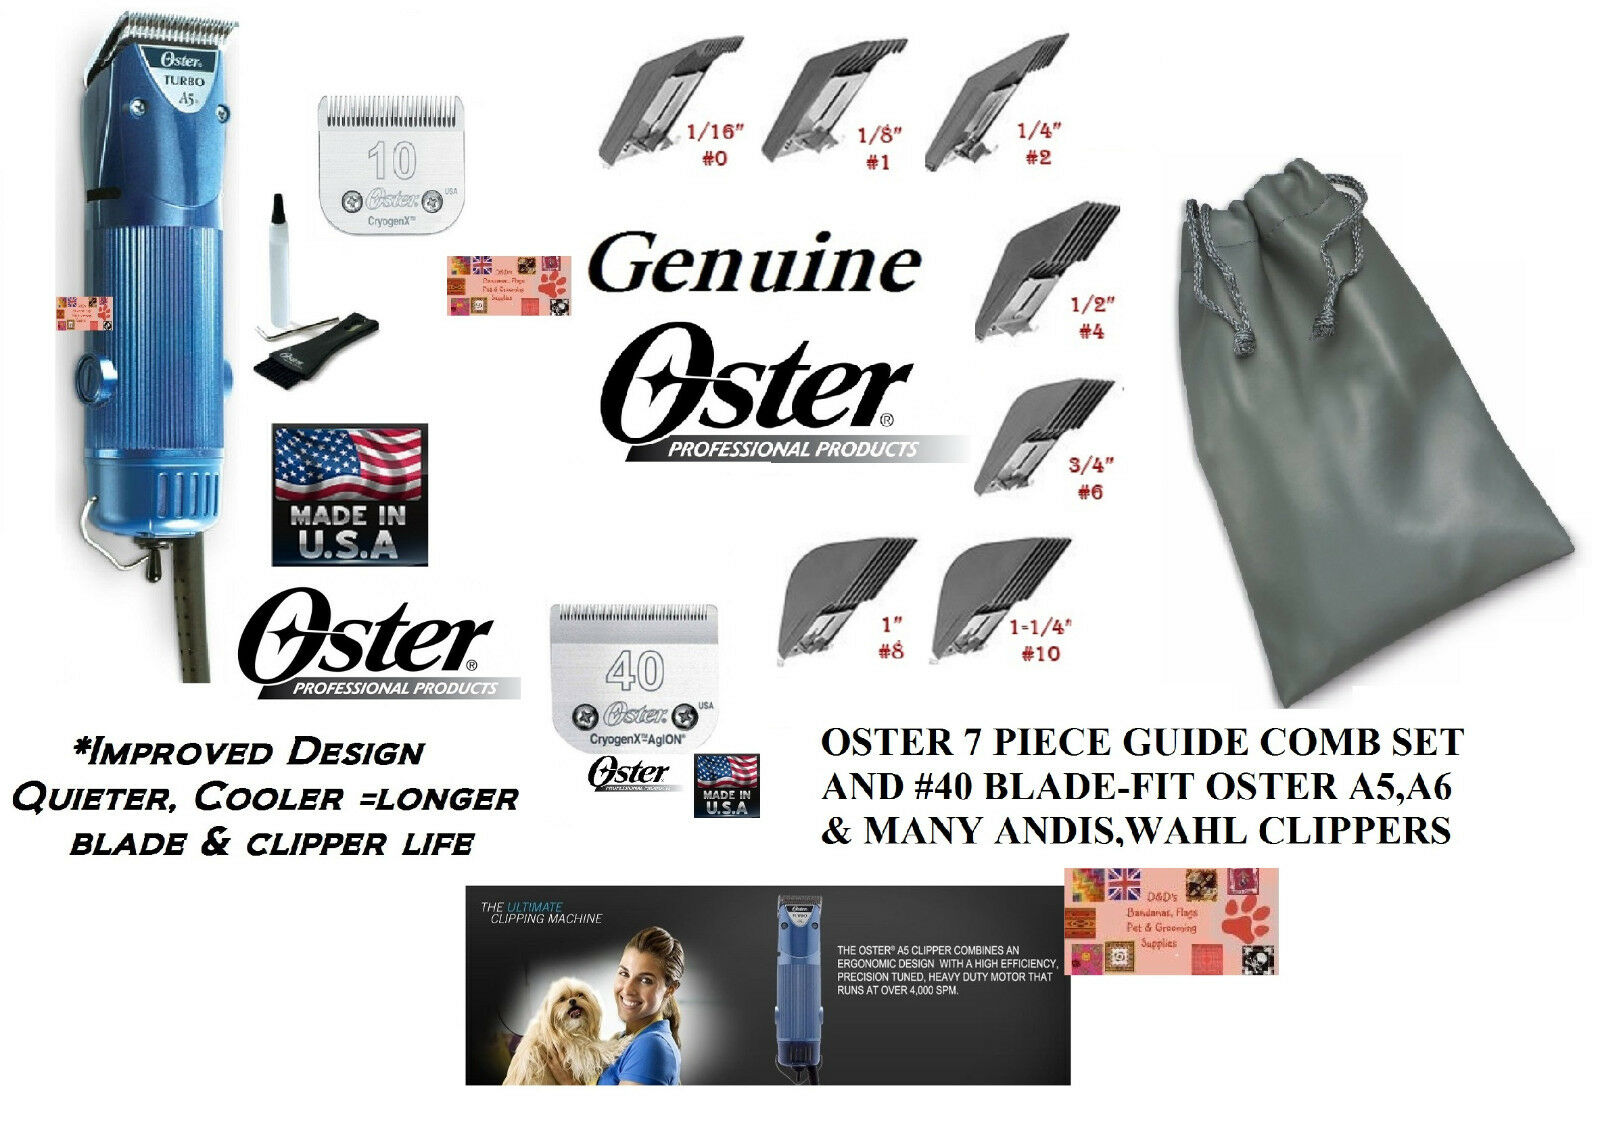 Oster A5 TURBO 2 Speed HEAVY DUTY CLIPPER SET Cryogen-X 10 BLADE&7pc GUIDE COMBS